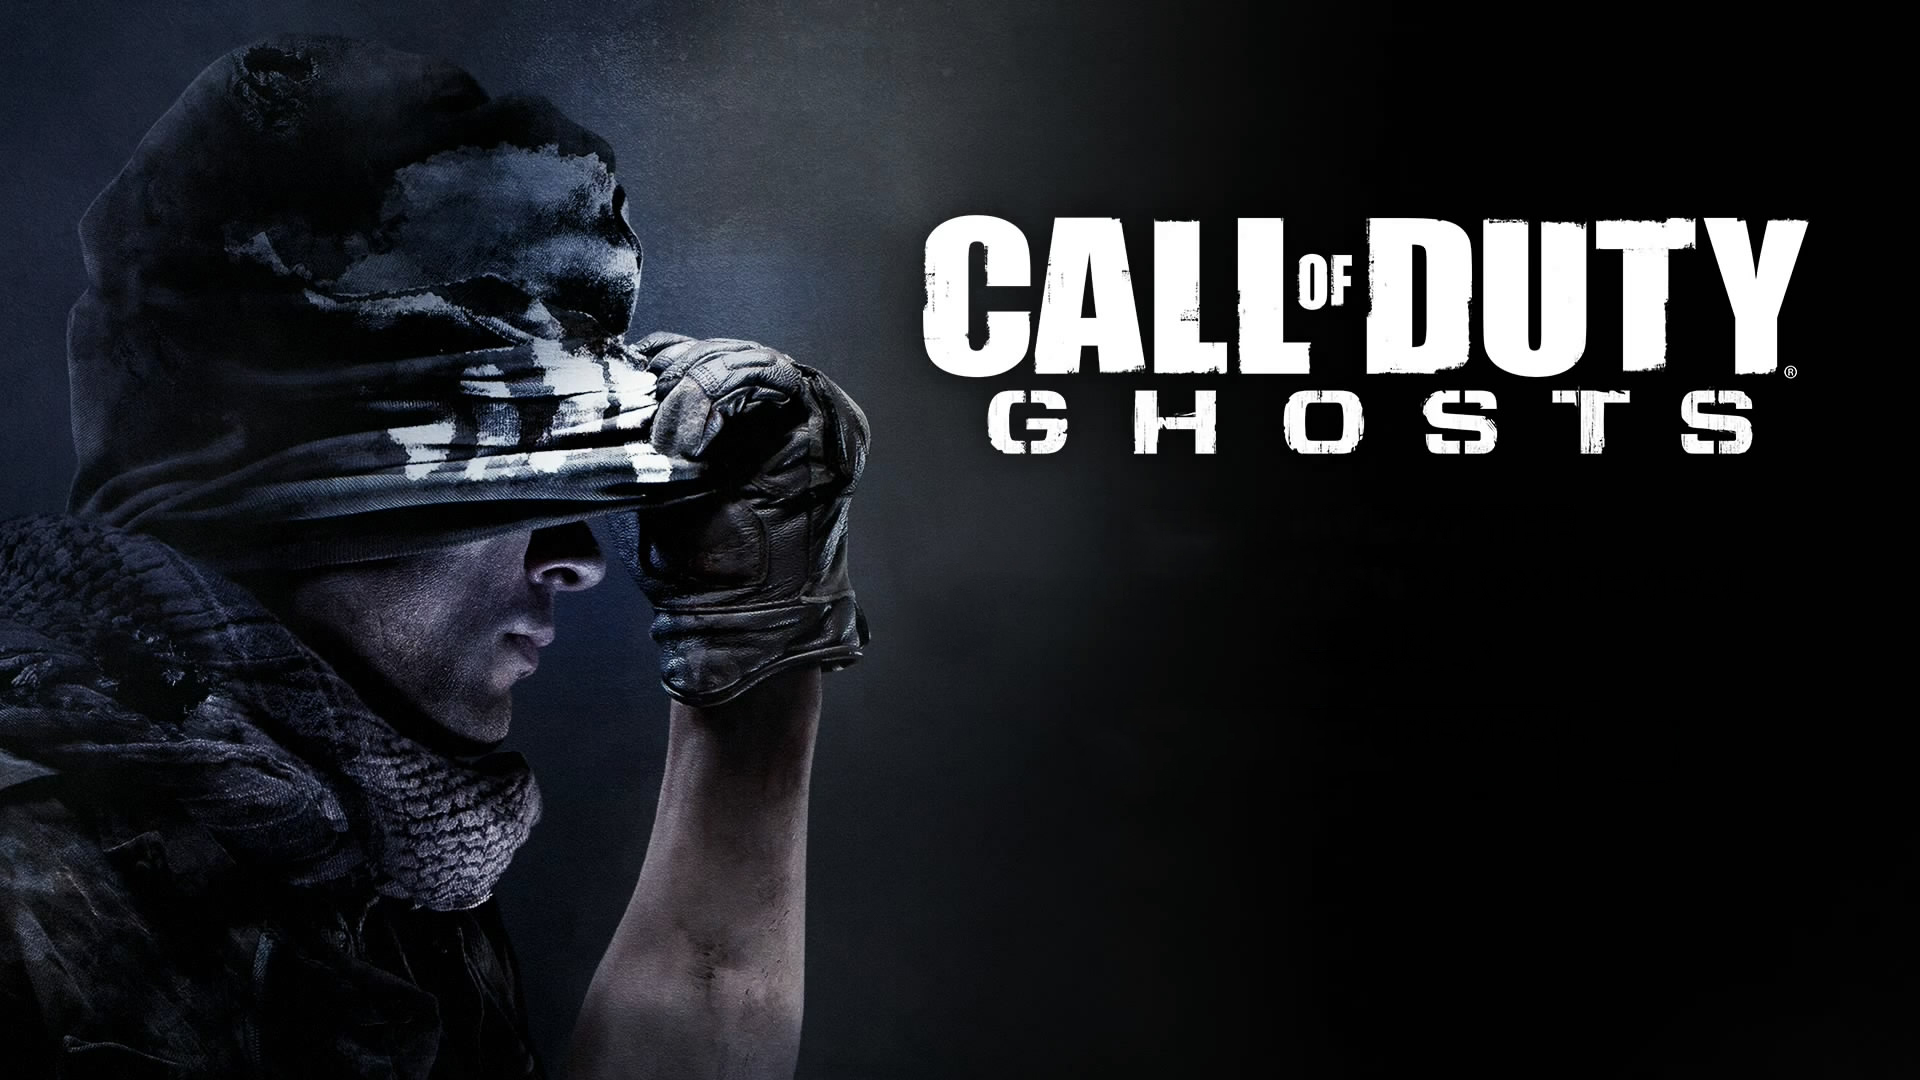 Call of Duty Ghosts 331.83 Kb